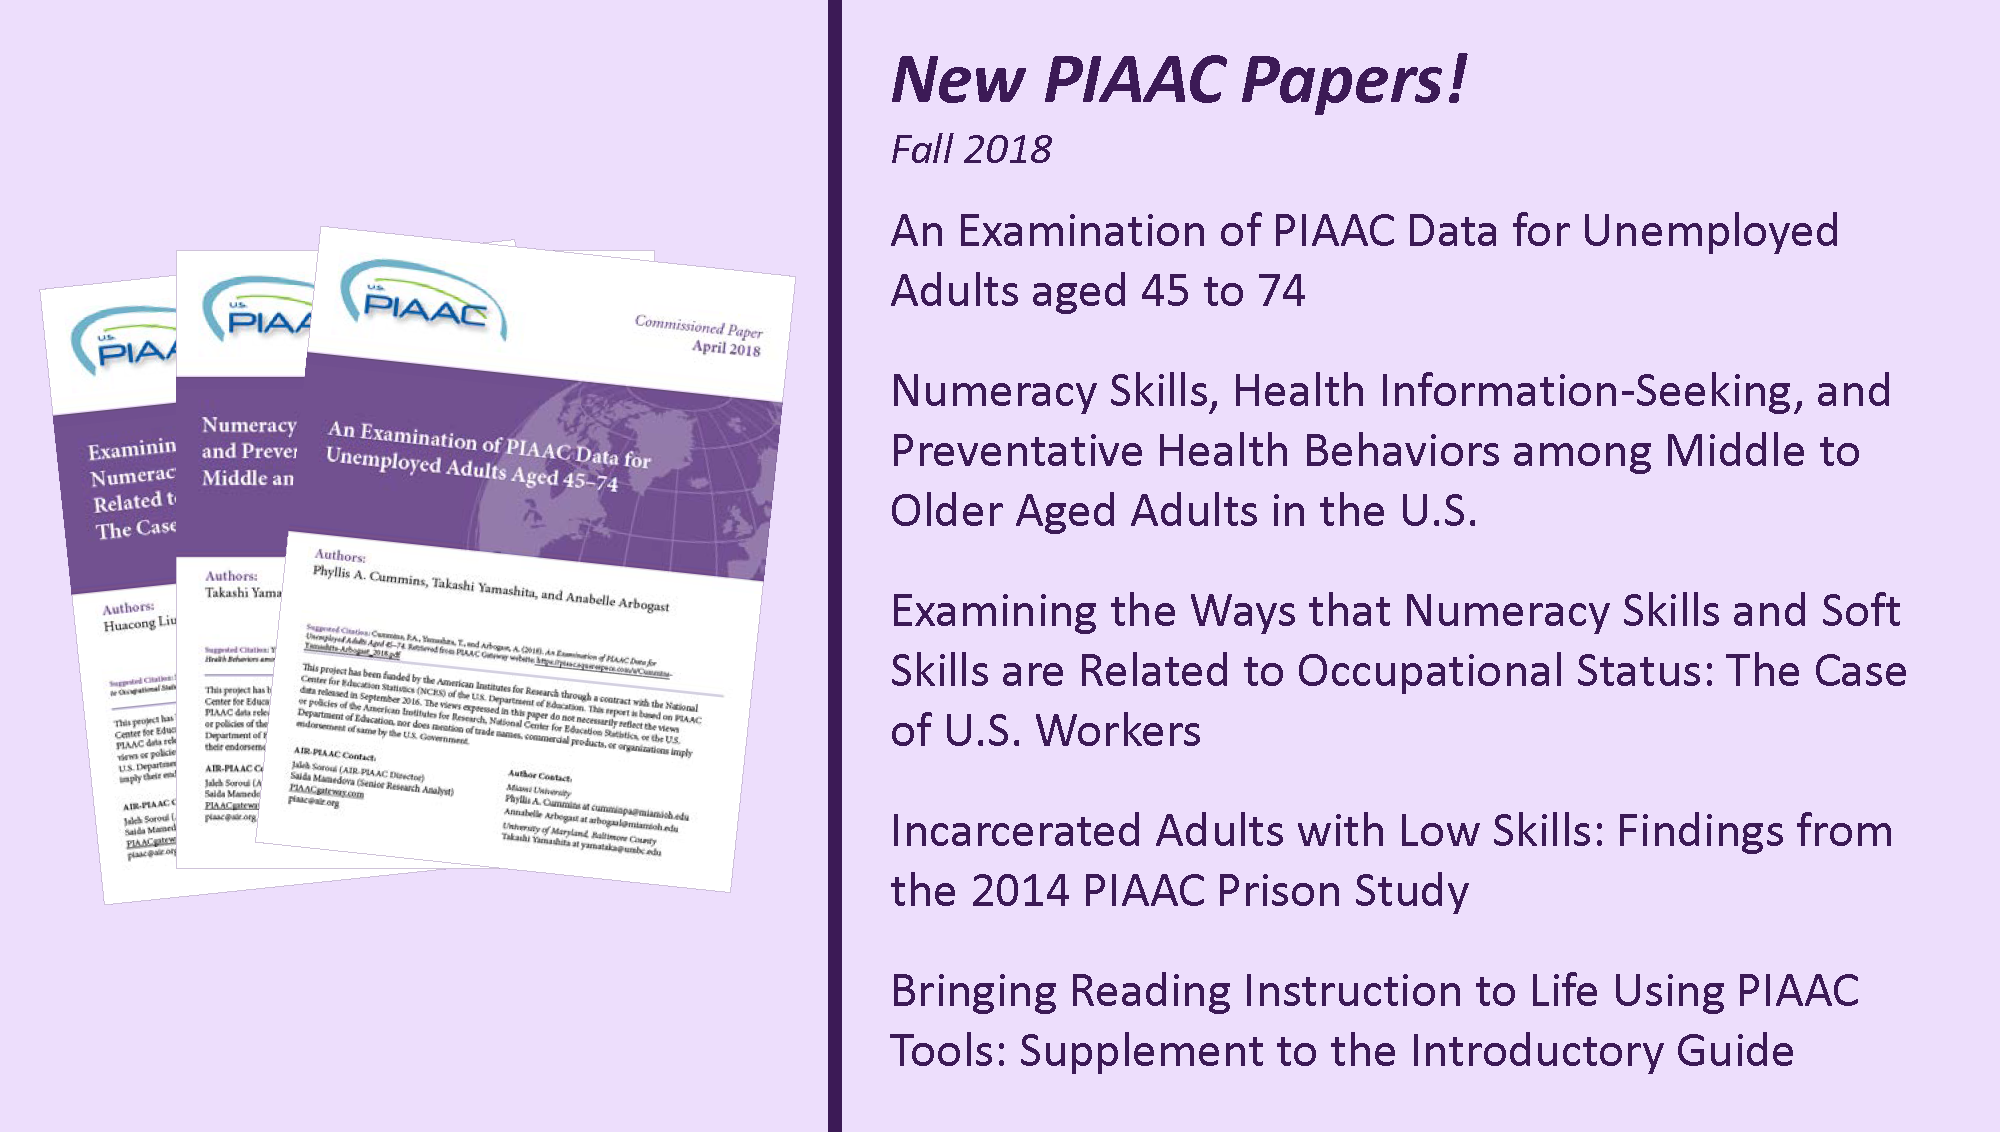 New PIAAC Papers – Fall 2018